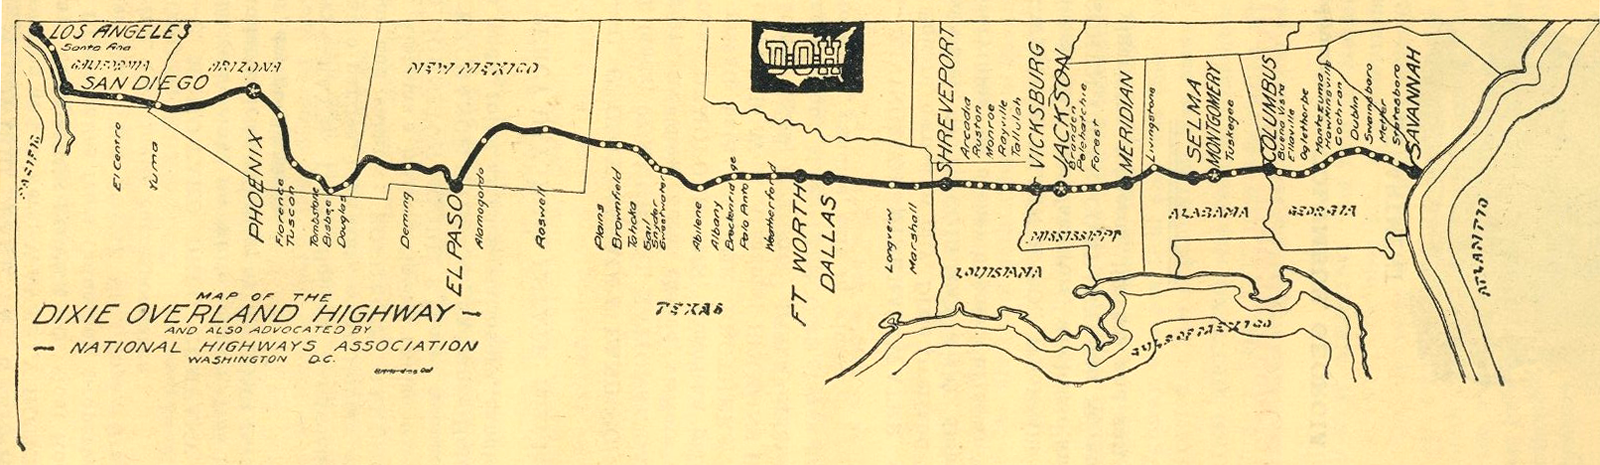 Dixie Overland Highway National Highways Association Map